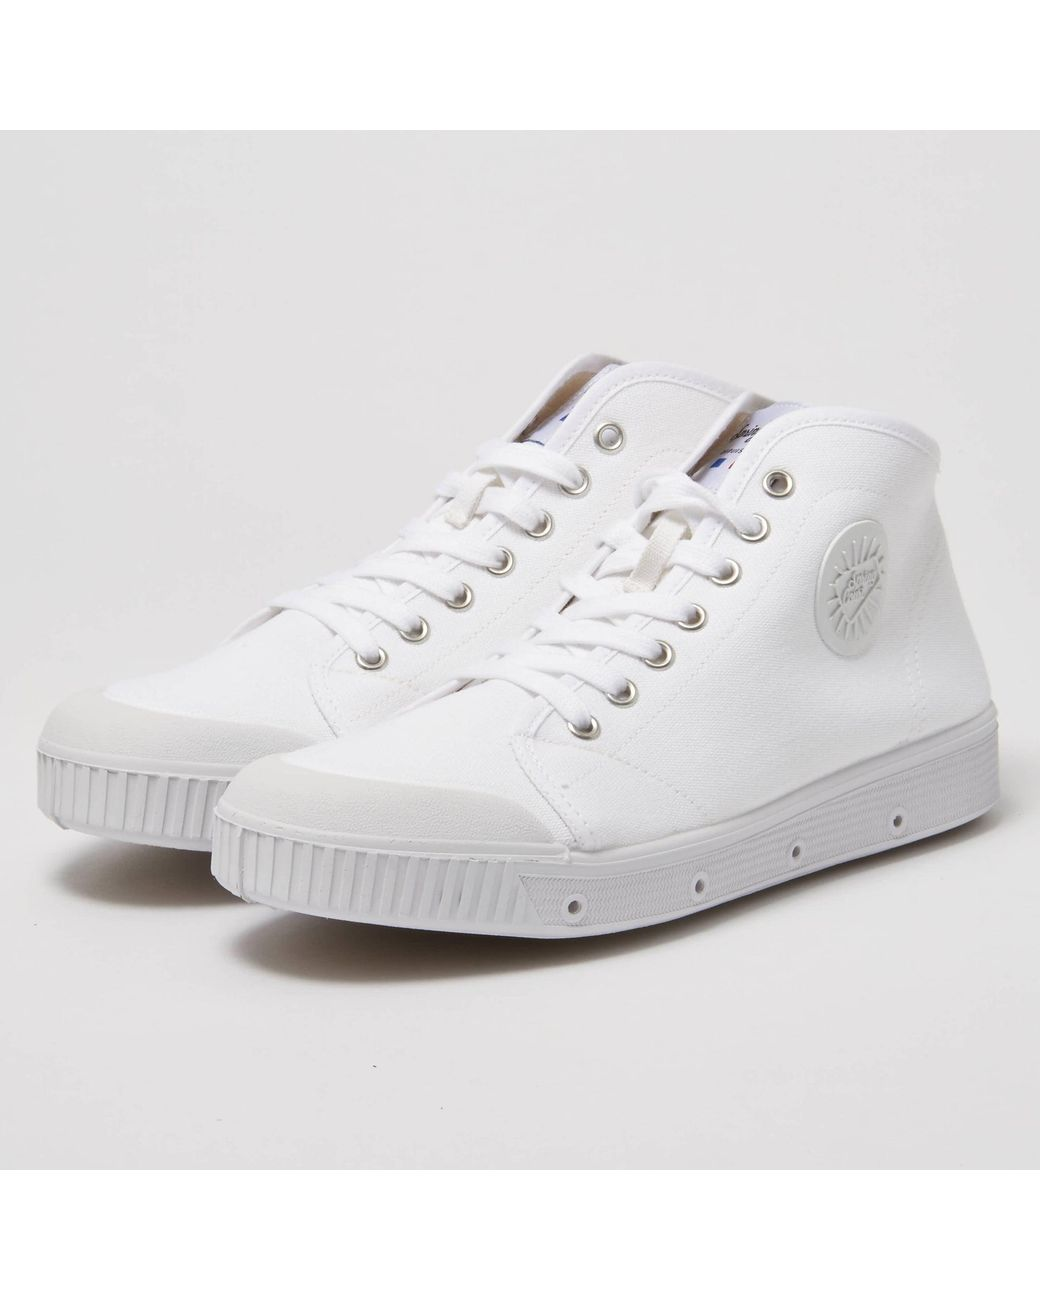 9aa81e583f Lyst - Spring Court Classic B2 Canvas White Shoe B2N-1001 in White ...